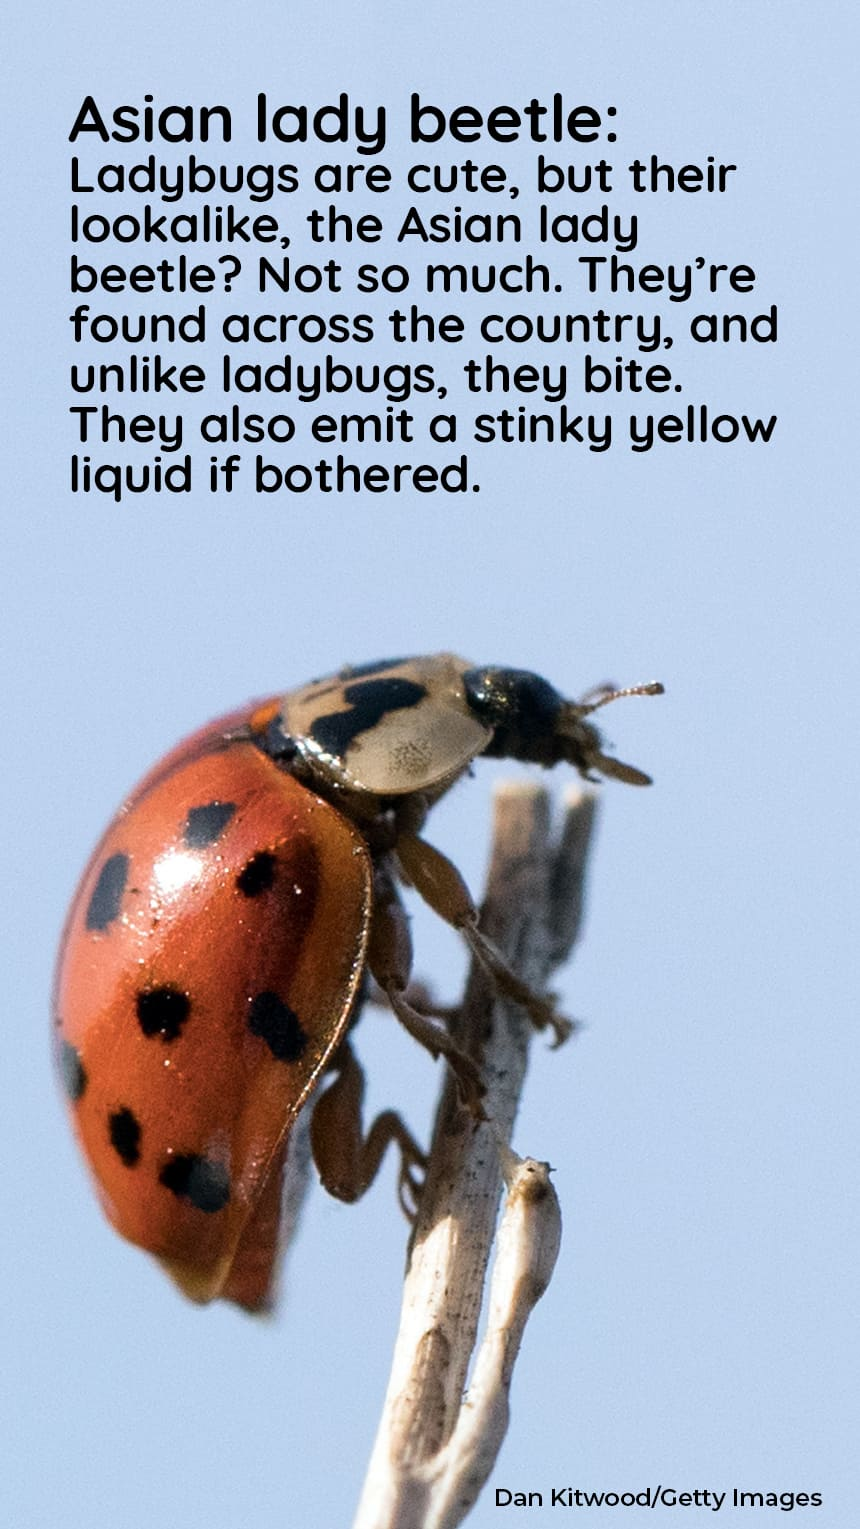 image: red beetle. TEXT: Asian lady beetle: Ladybugs are cute, but their lookalike, the Asian lady beetle? Not so much. They're found across the country, and unlike ladybugs, they bite. They also emit a stinky yellow liquid if bothered.